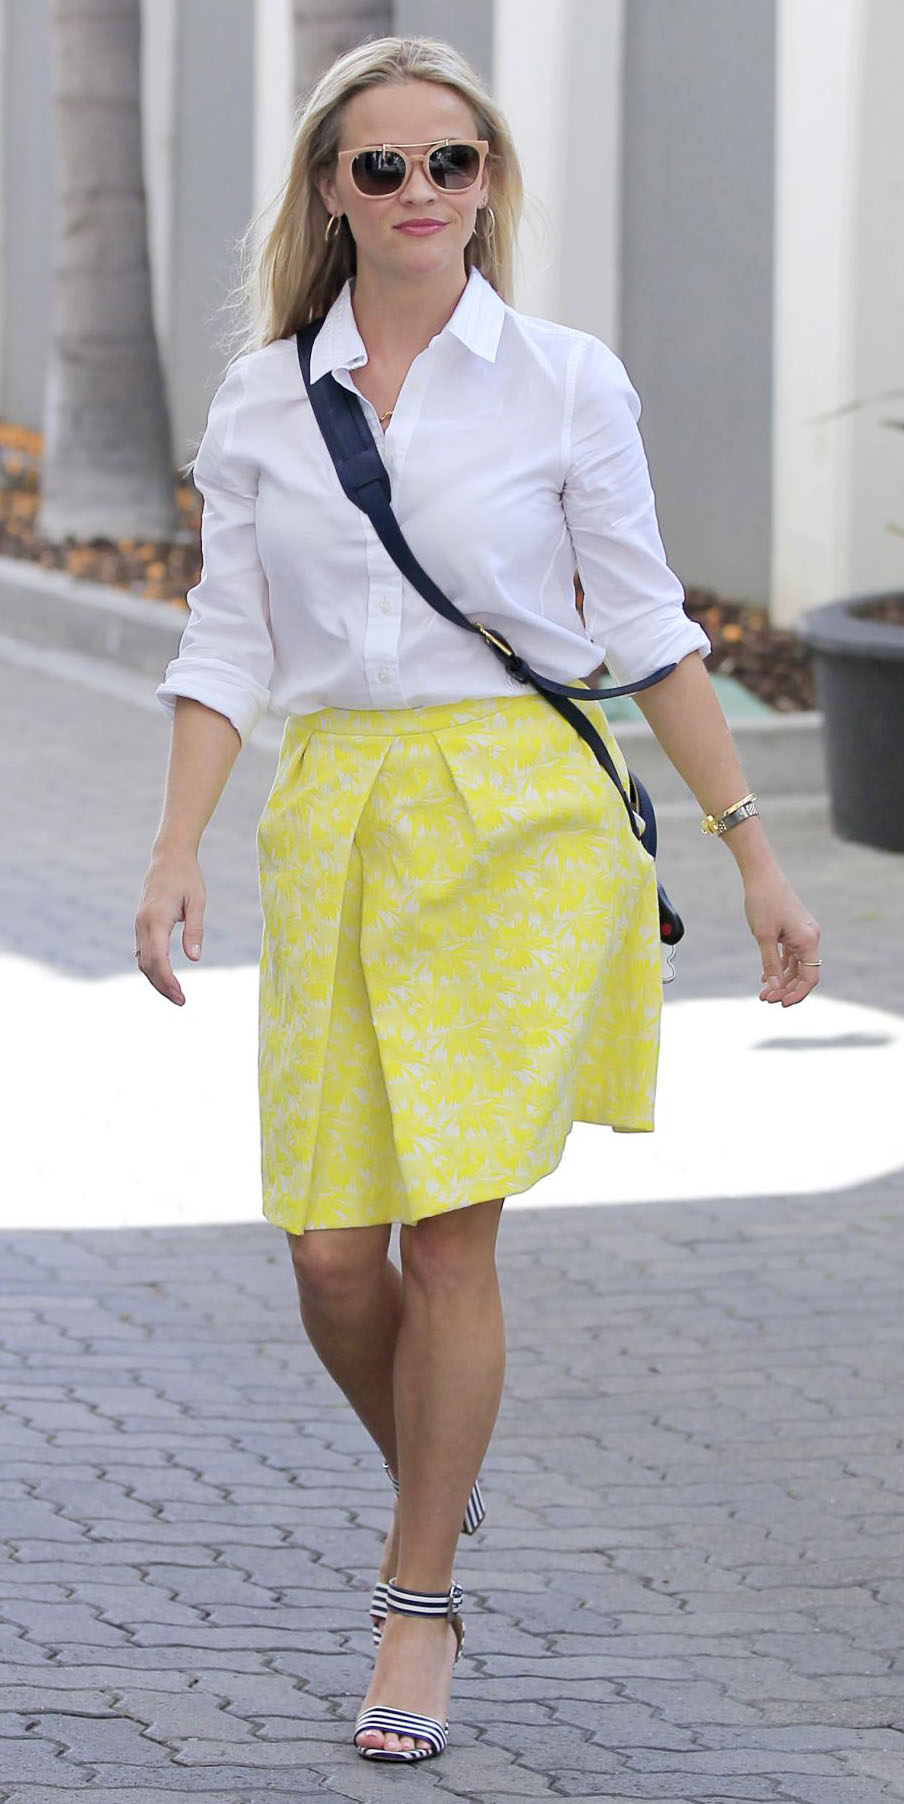 yellow-mini-skirt-white-collared-shirt-sun-reesewitherspoon-howtowear-style-spring-summer-blonde-work.jpg